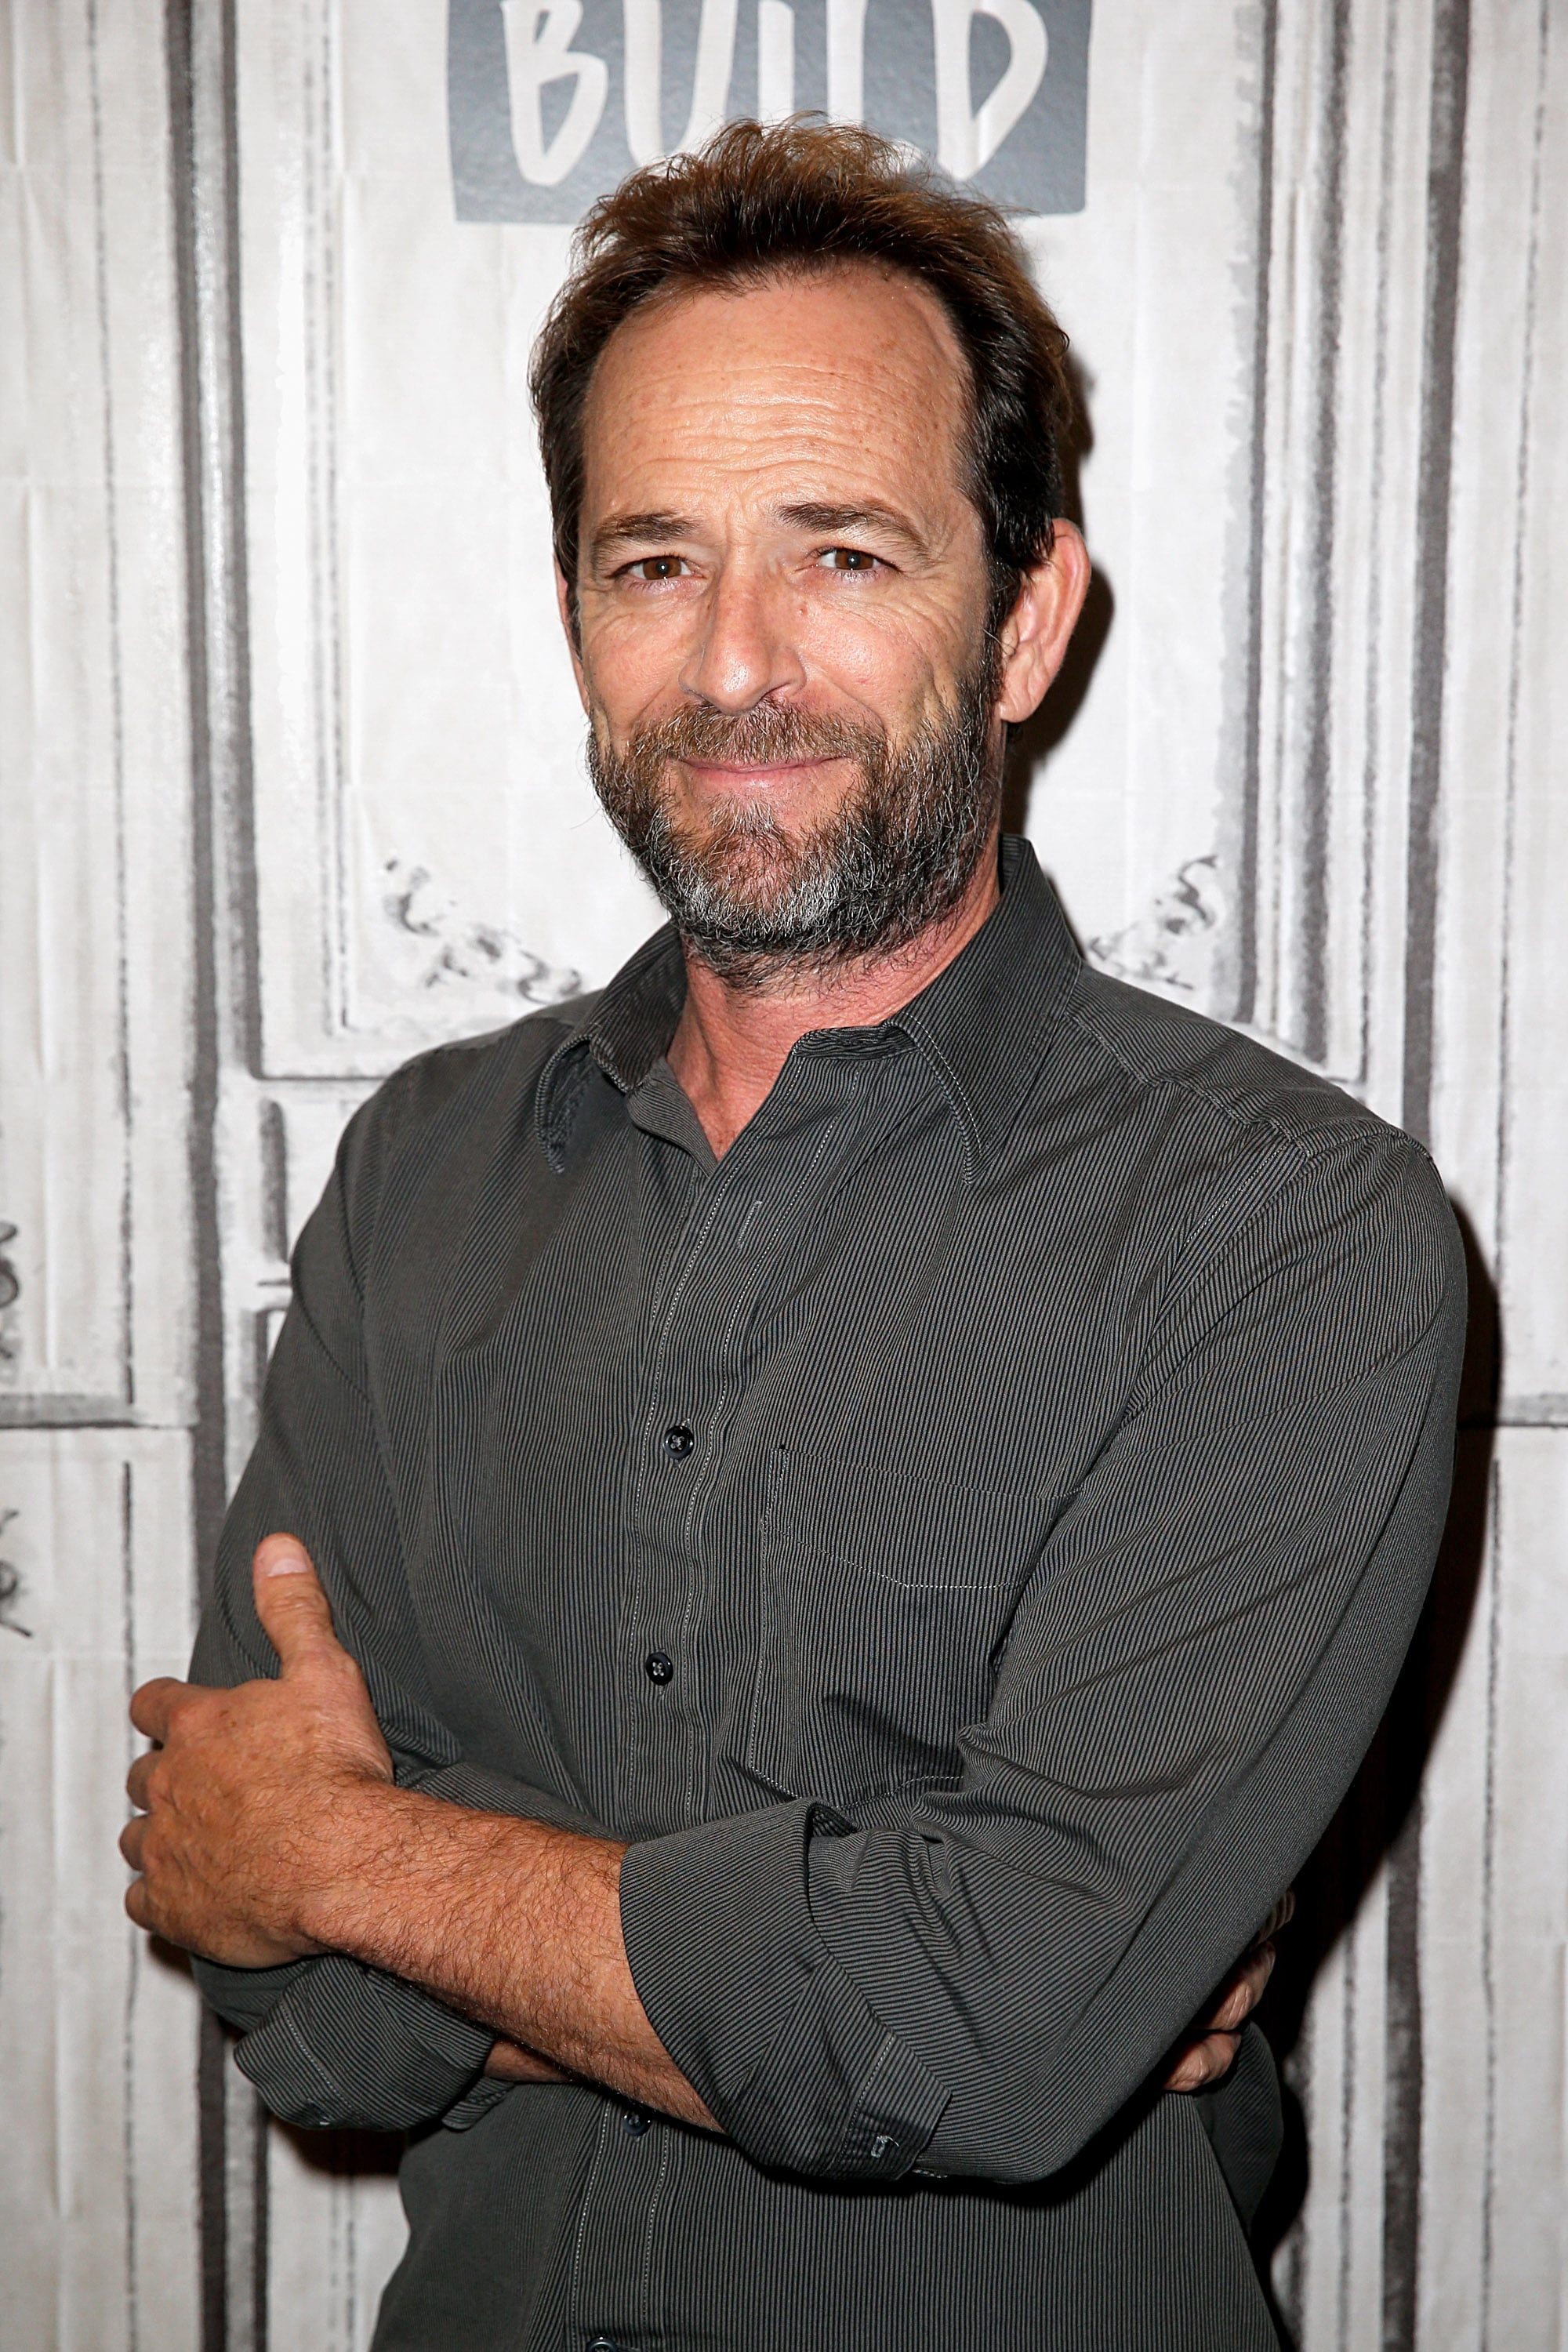 NEW YORK, NY - OCTOBER 08:  Luke Perry attends the Build Series to discuss